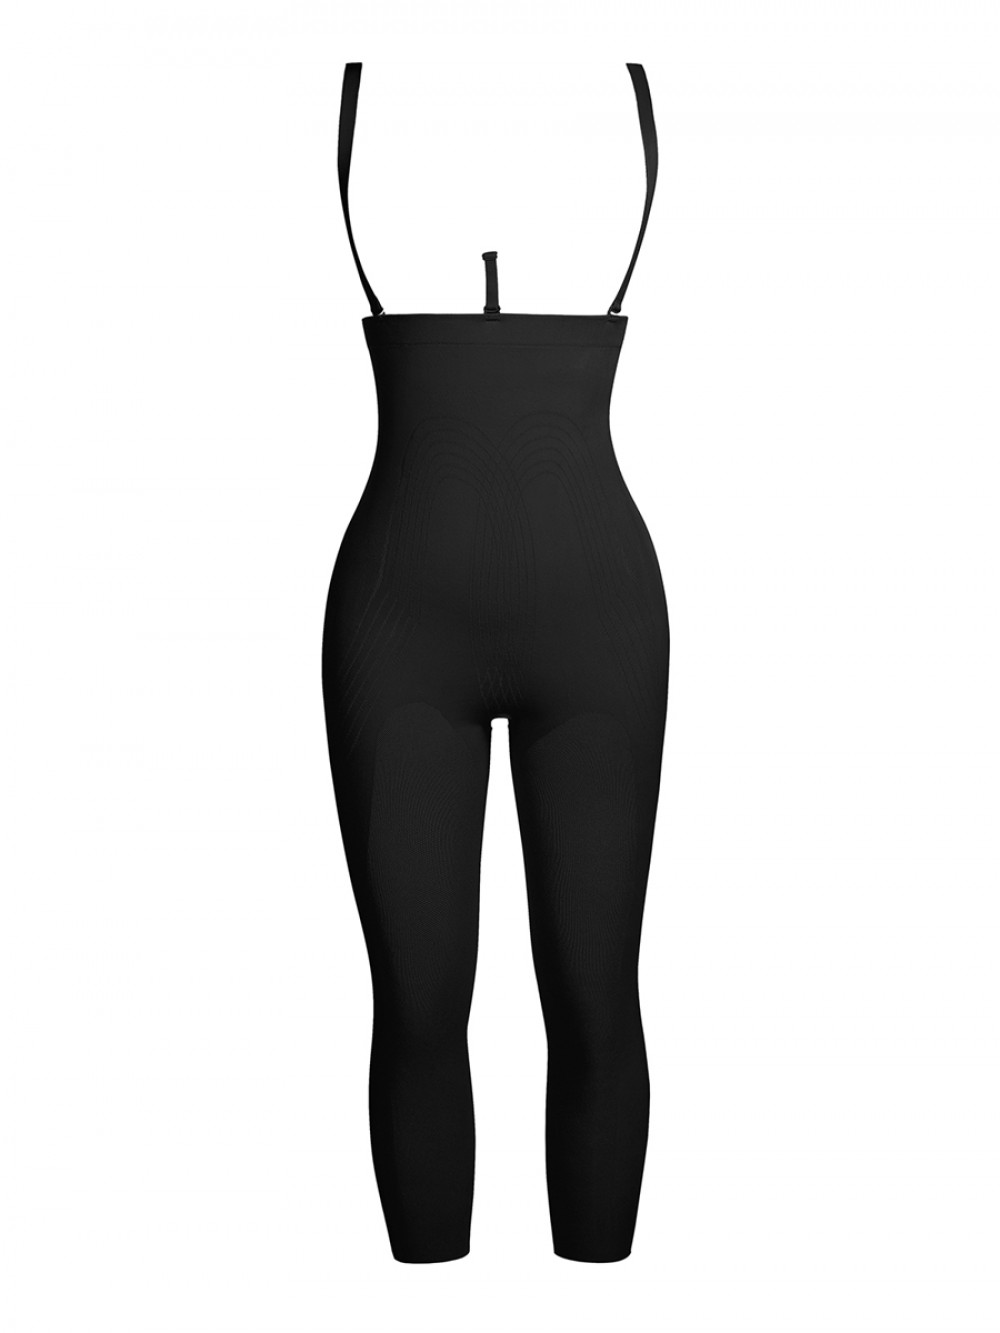 Black Plus Size Full Body Shaper With Open Crotch Smooth Silhouette